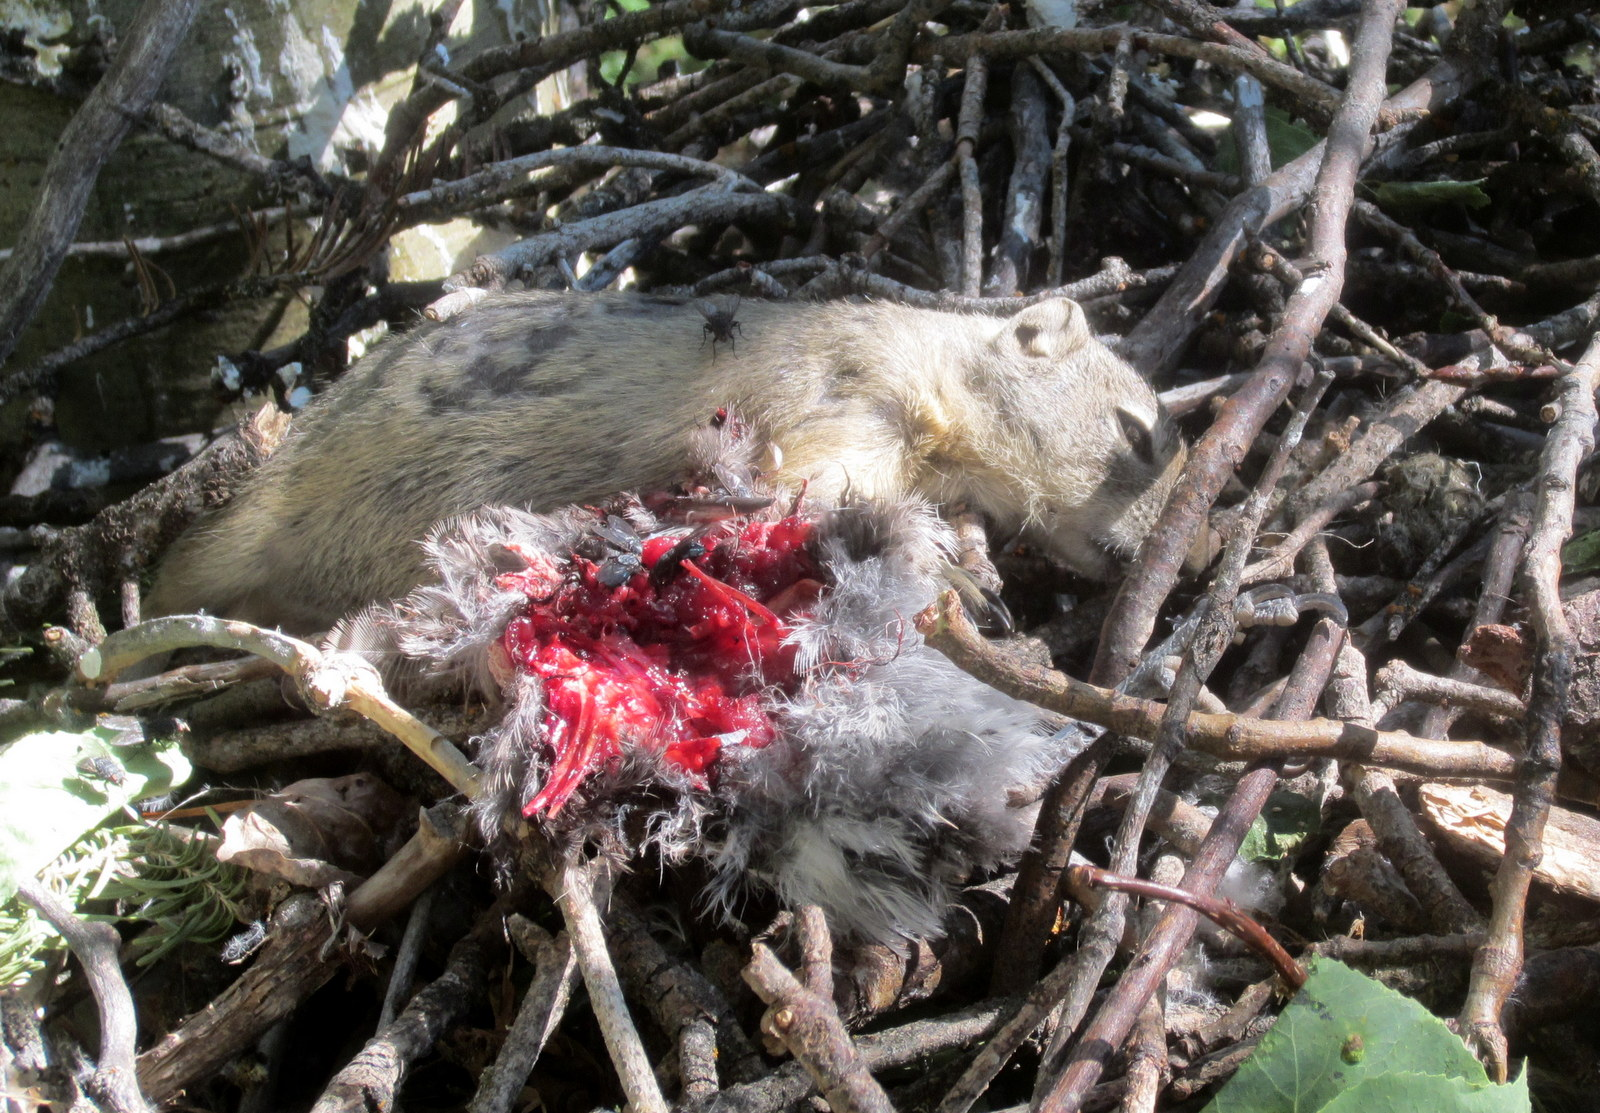 a dead groundsquirrel with eyes closed lays on the sticks of a goshawk nest